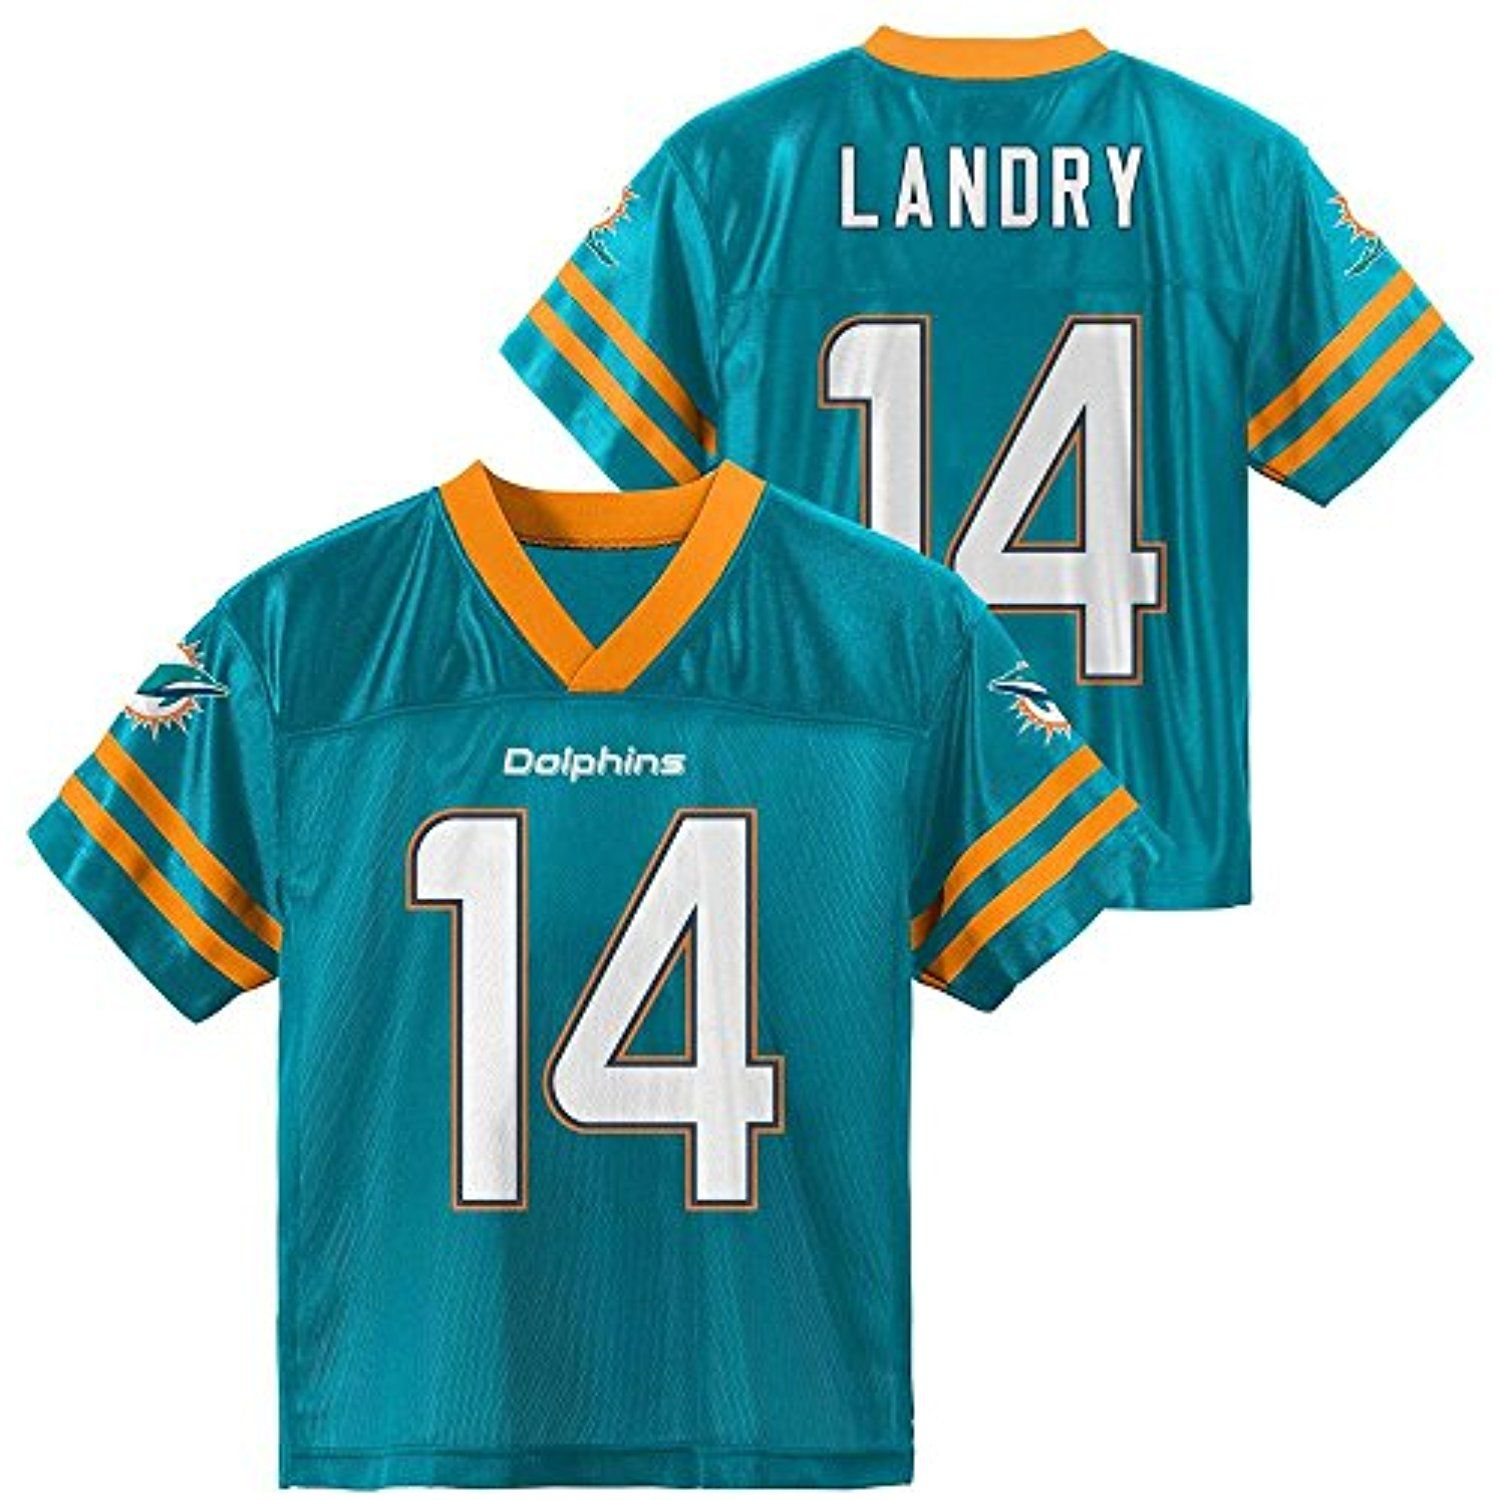 a43b813f Jarvis Landry Miami Dolphins Aqua Kids NFL Player Home Jersey ...